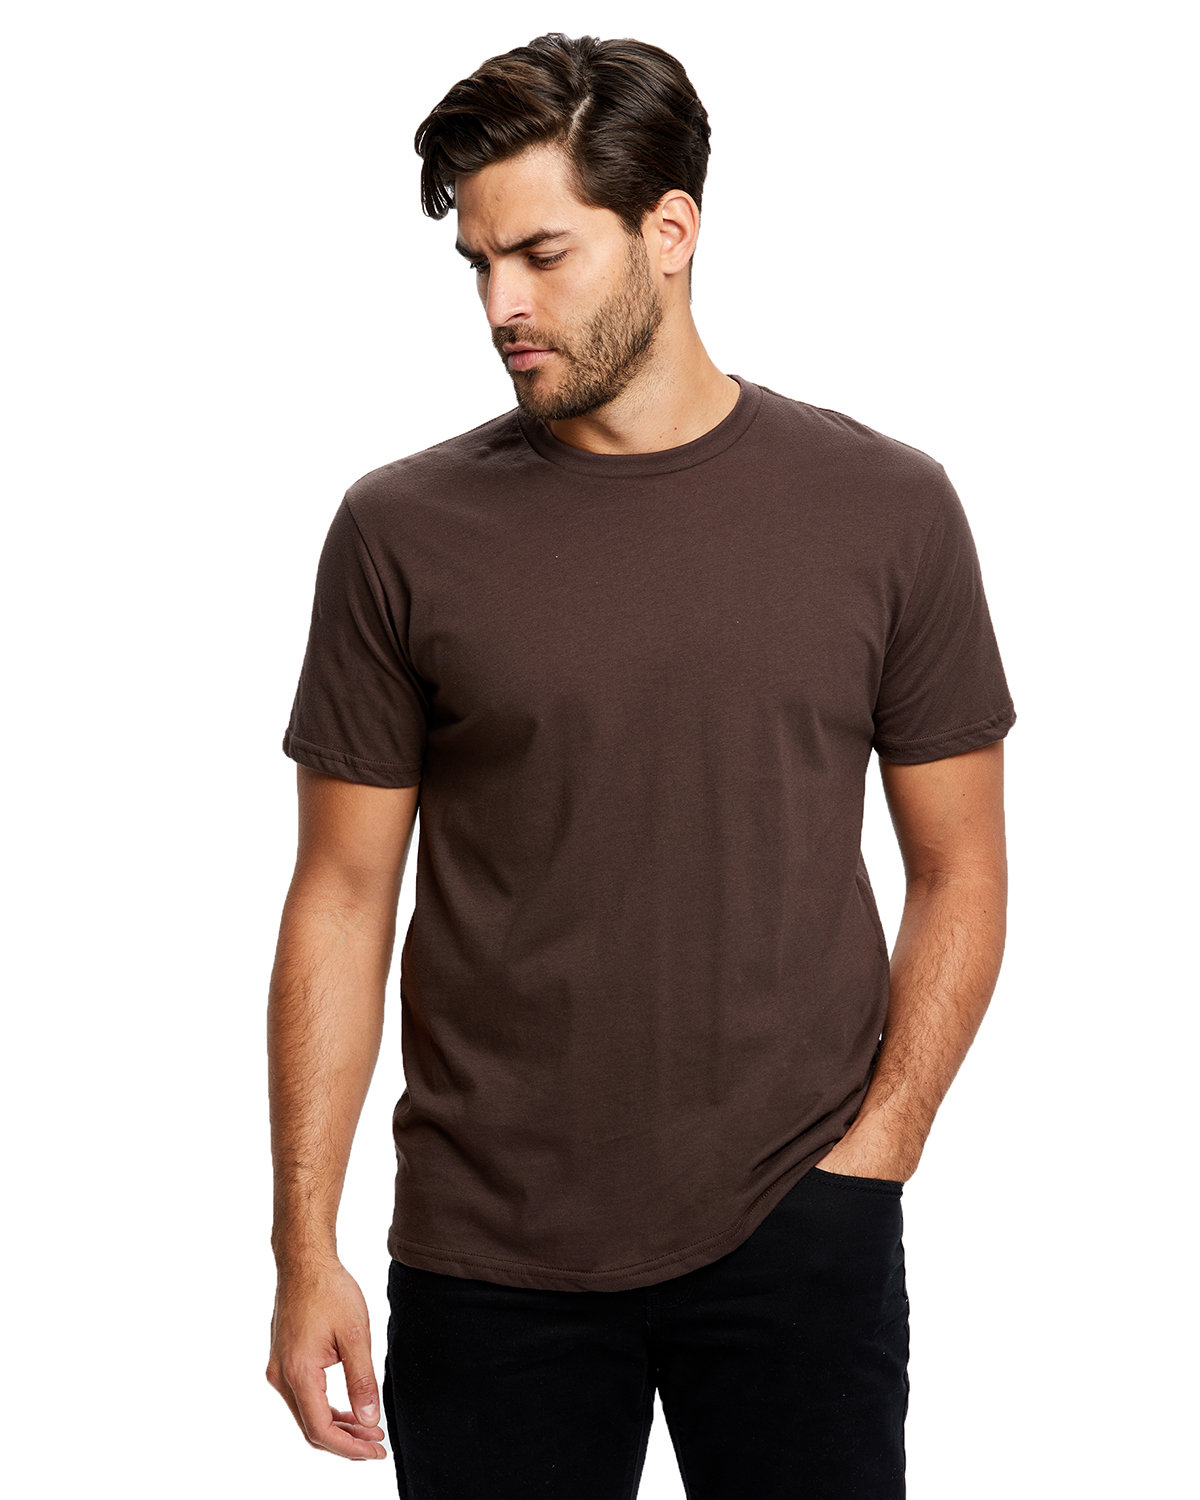 US Blanks Men's Made in USA Short Sleeve Crew T-Shirt BROWN